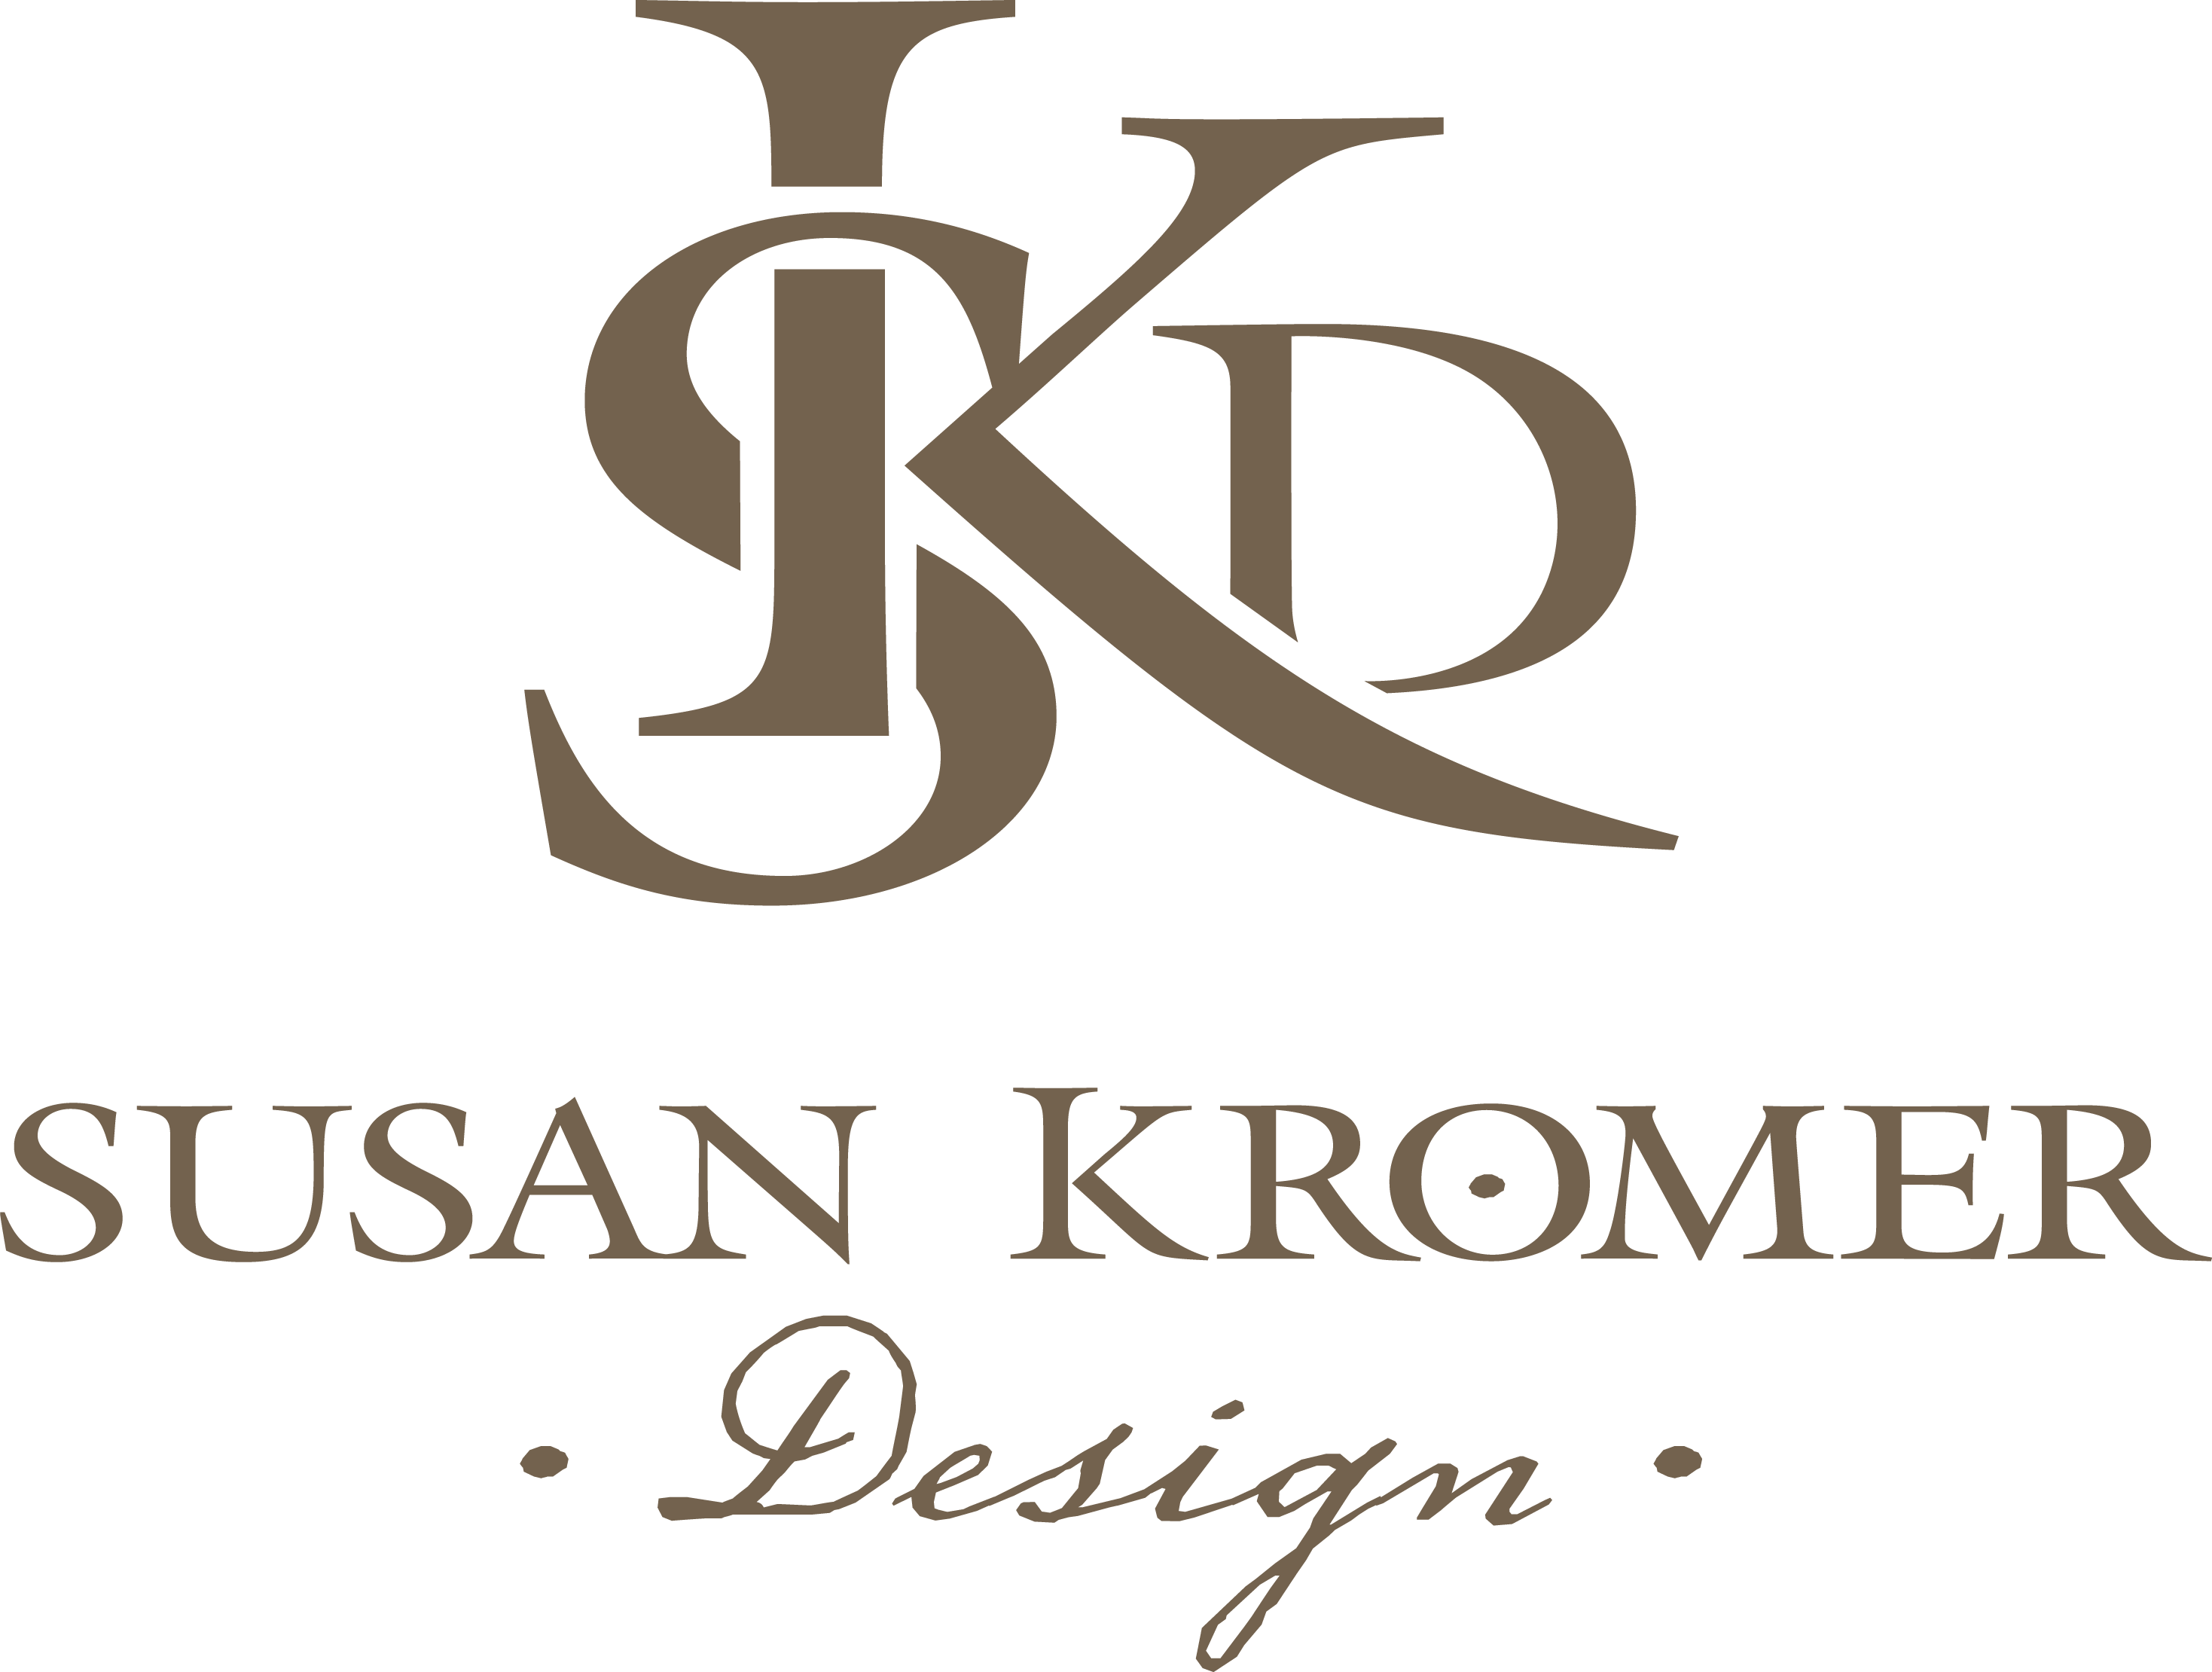 Susan Kromer Design, Inc.